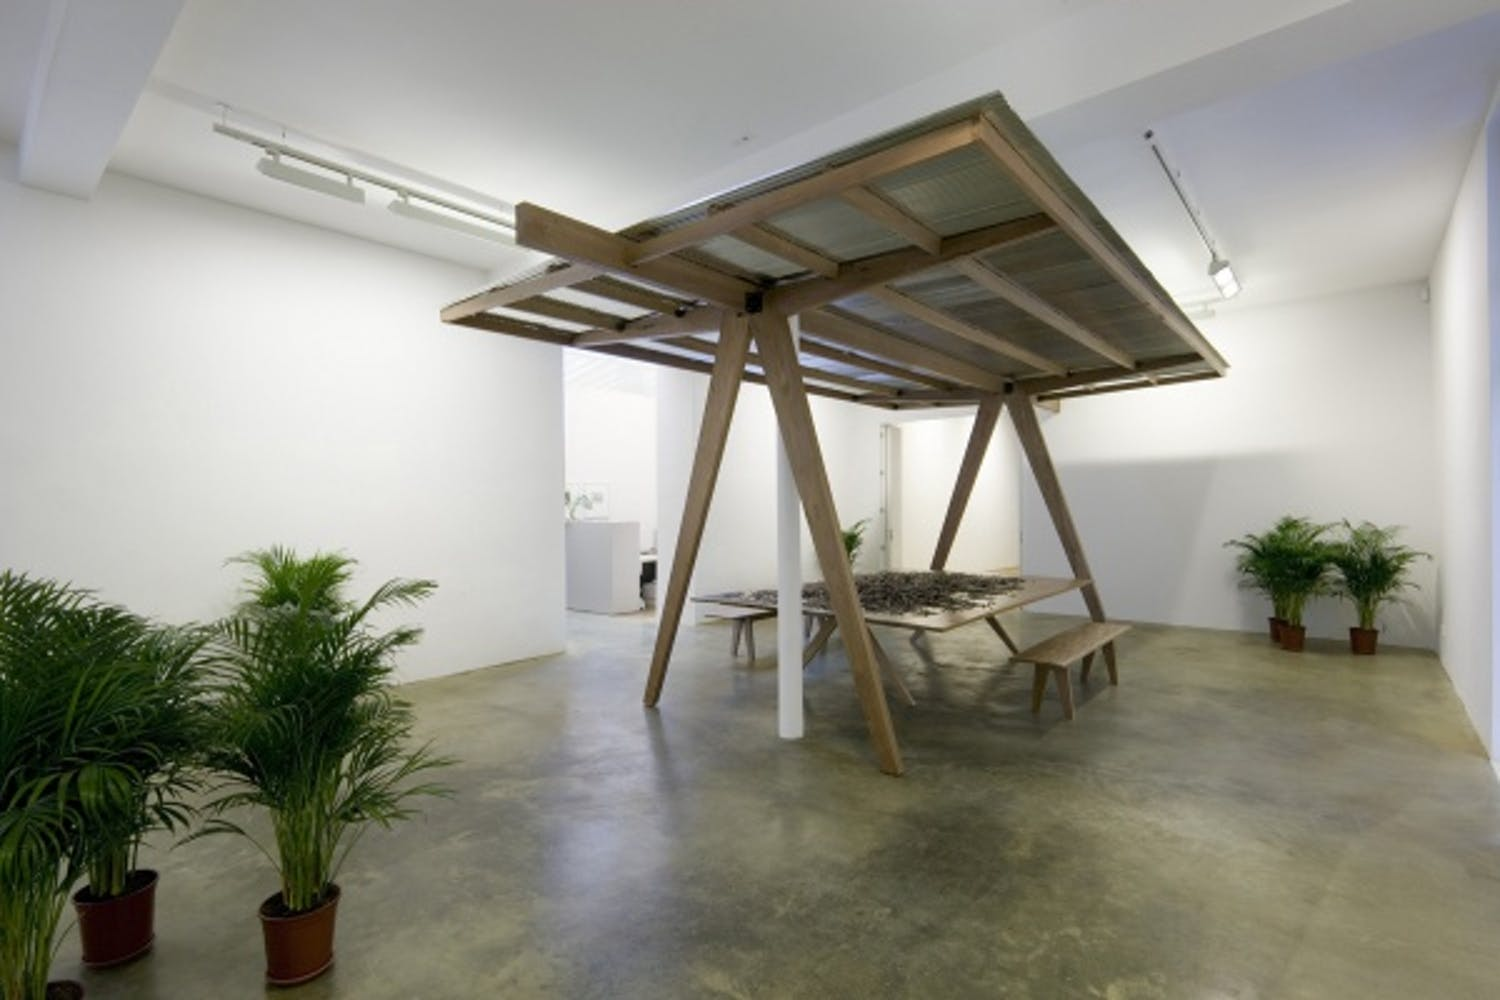 Rirkrit Tiravanija, untitled 2006 (pavilion, table and puzzle), 2006